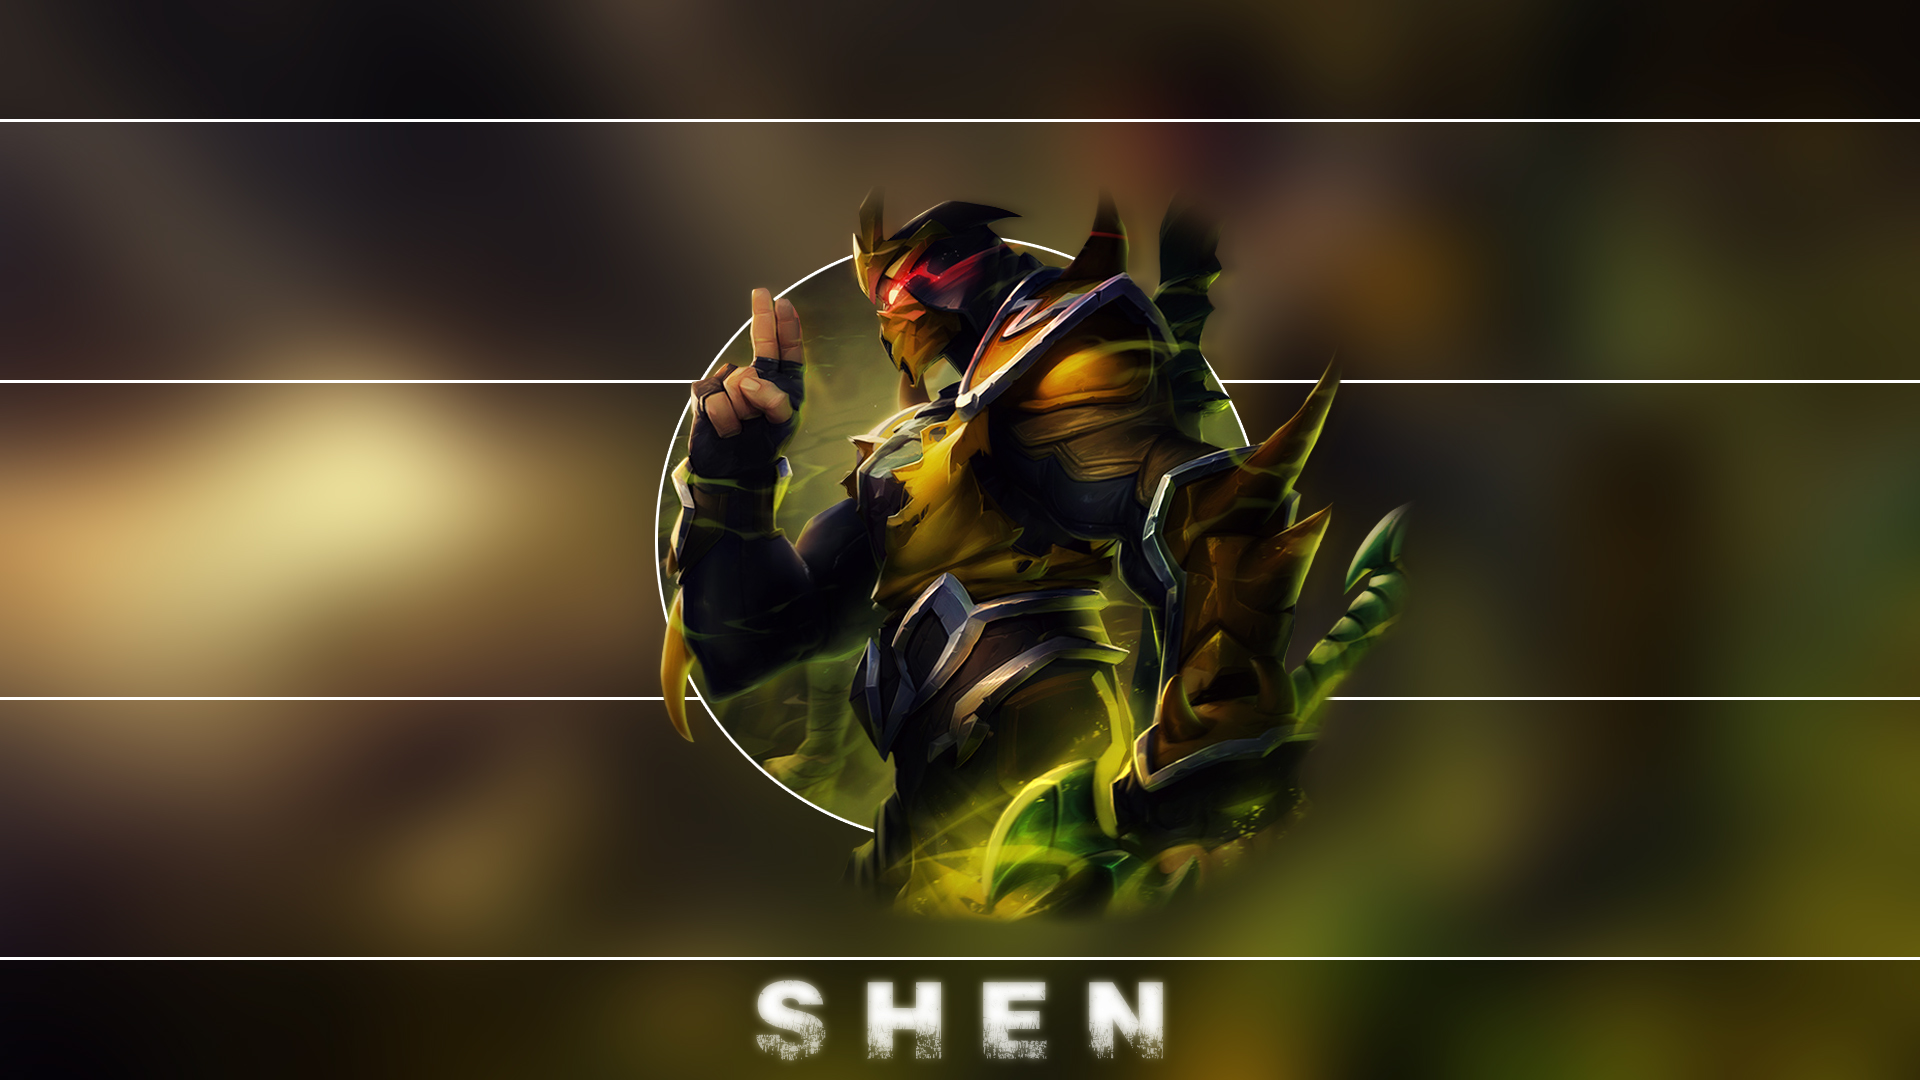 Yellow Jacket Shen wallpaper